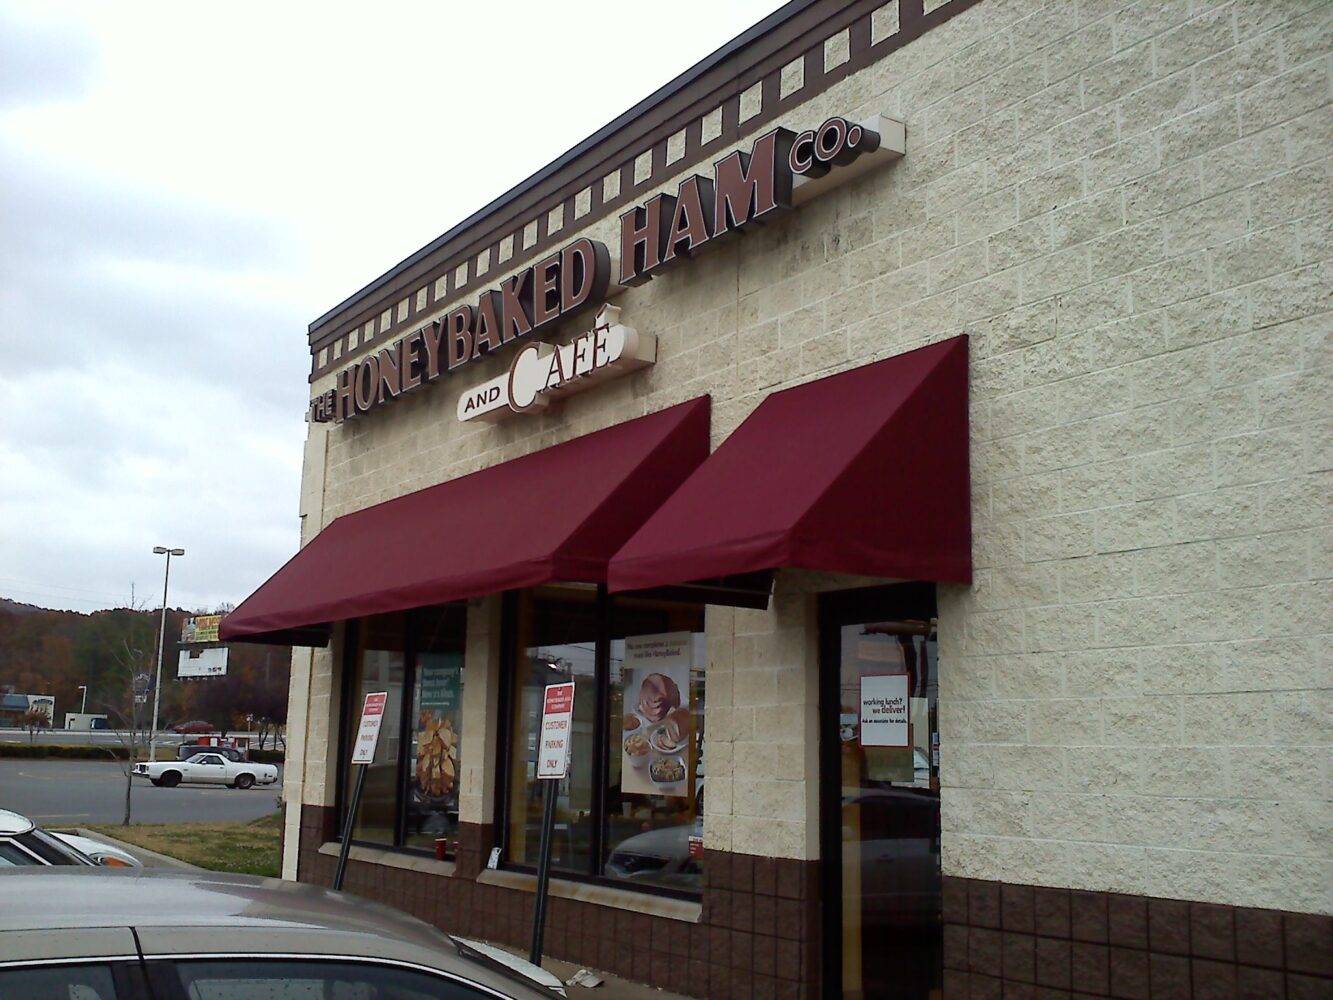 Custom Awning Honeybaked Ham Cartersville Georgia